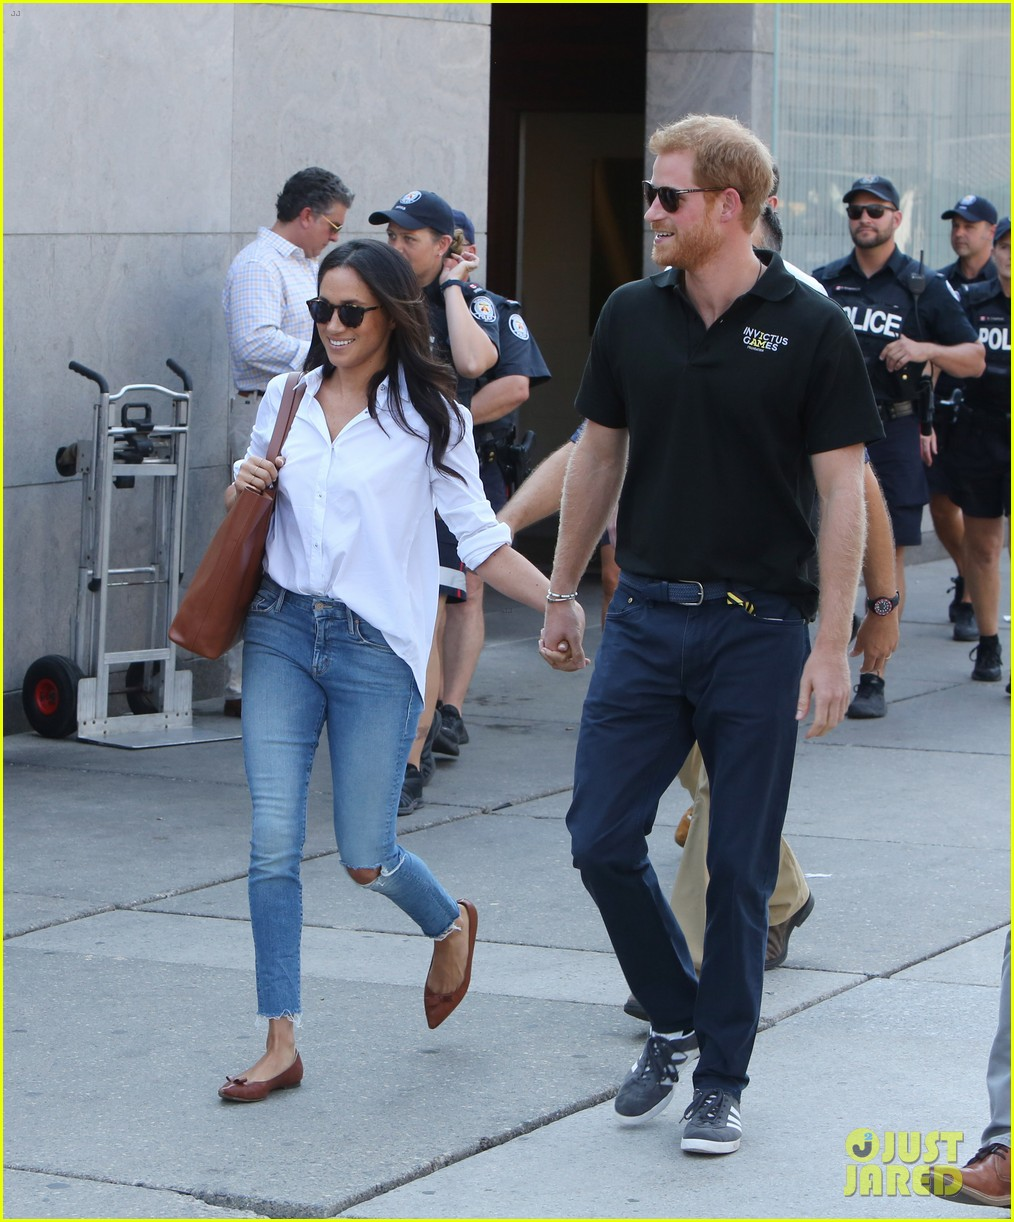 Prince Harry & Meghan Markle Hold Hands, Make First Public